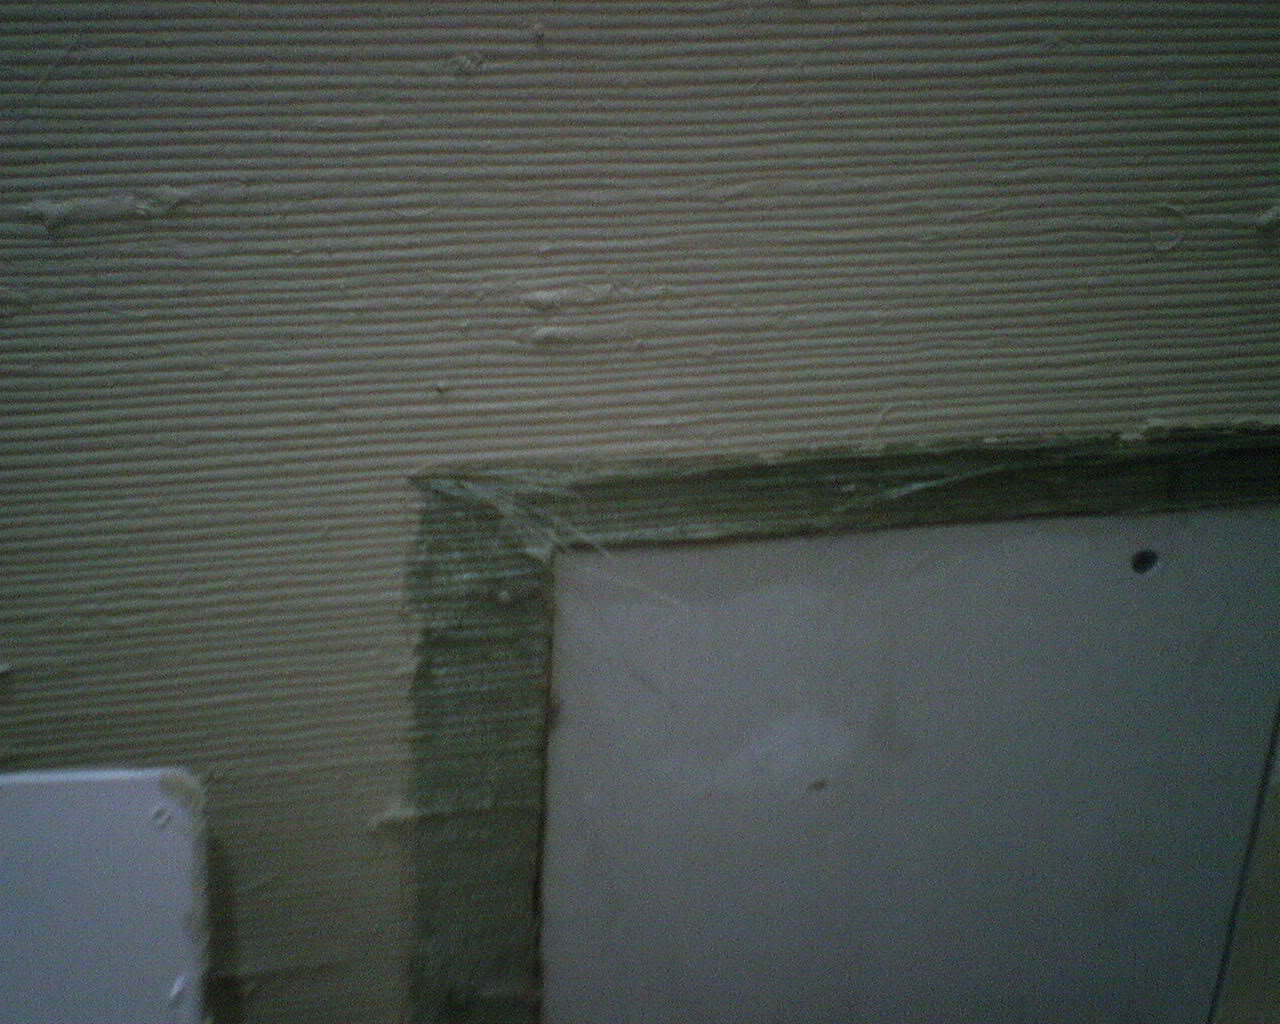 Painting over grasscloth wallpaper - Painting Grasscloth Is Not A Good Idea